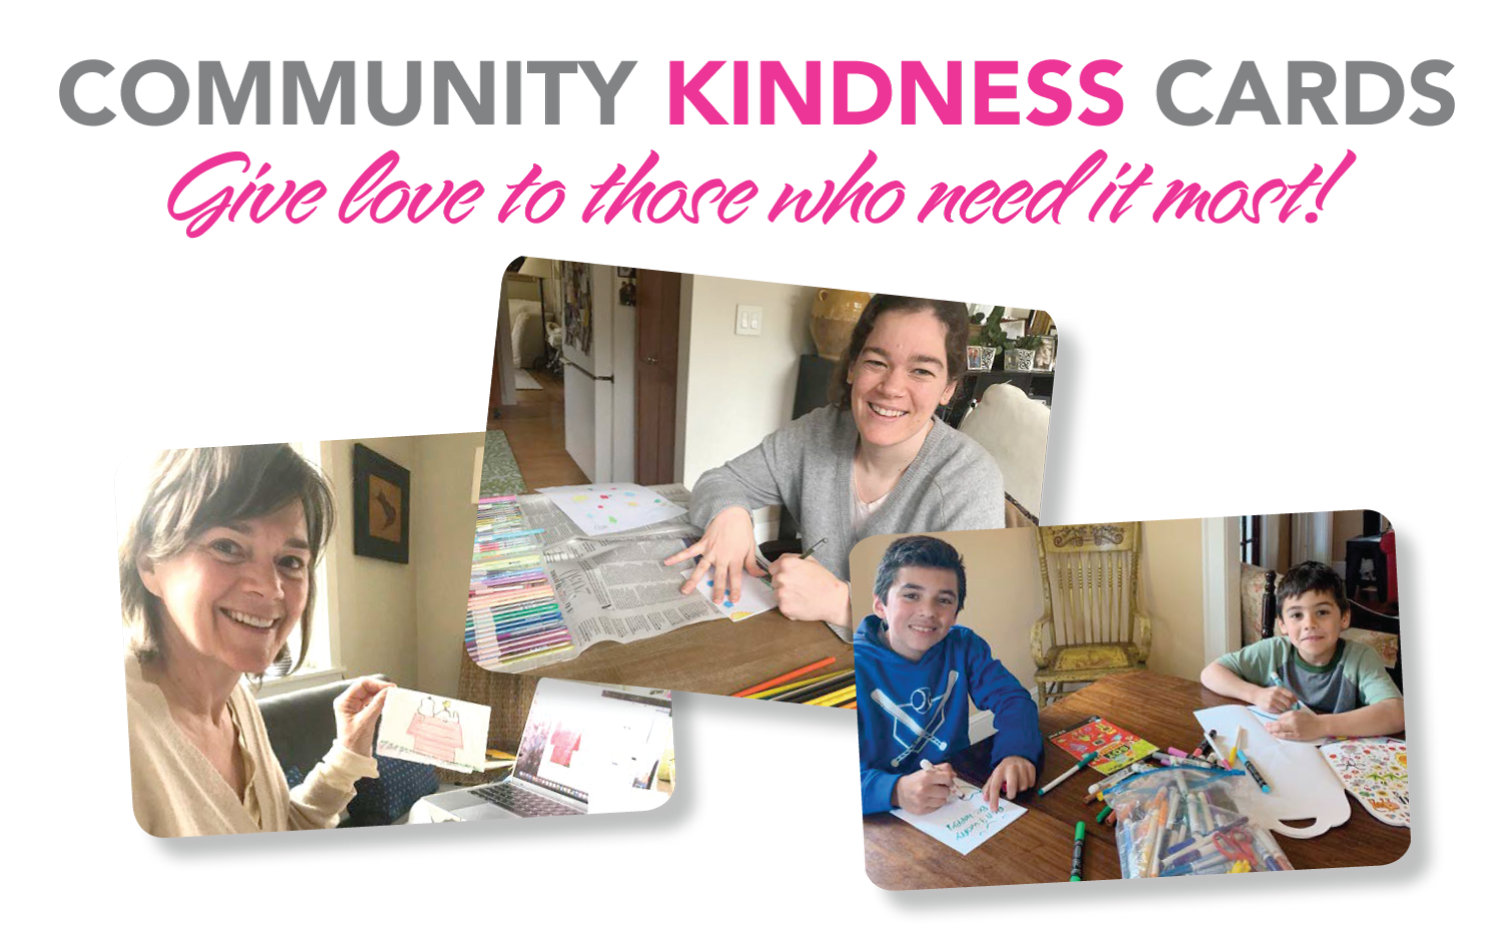 Community Kindness Card Initiative<br />